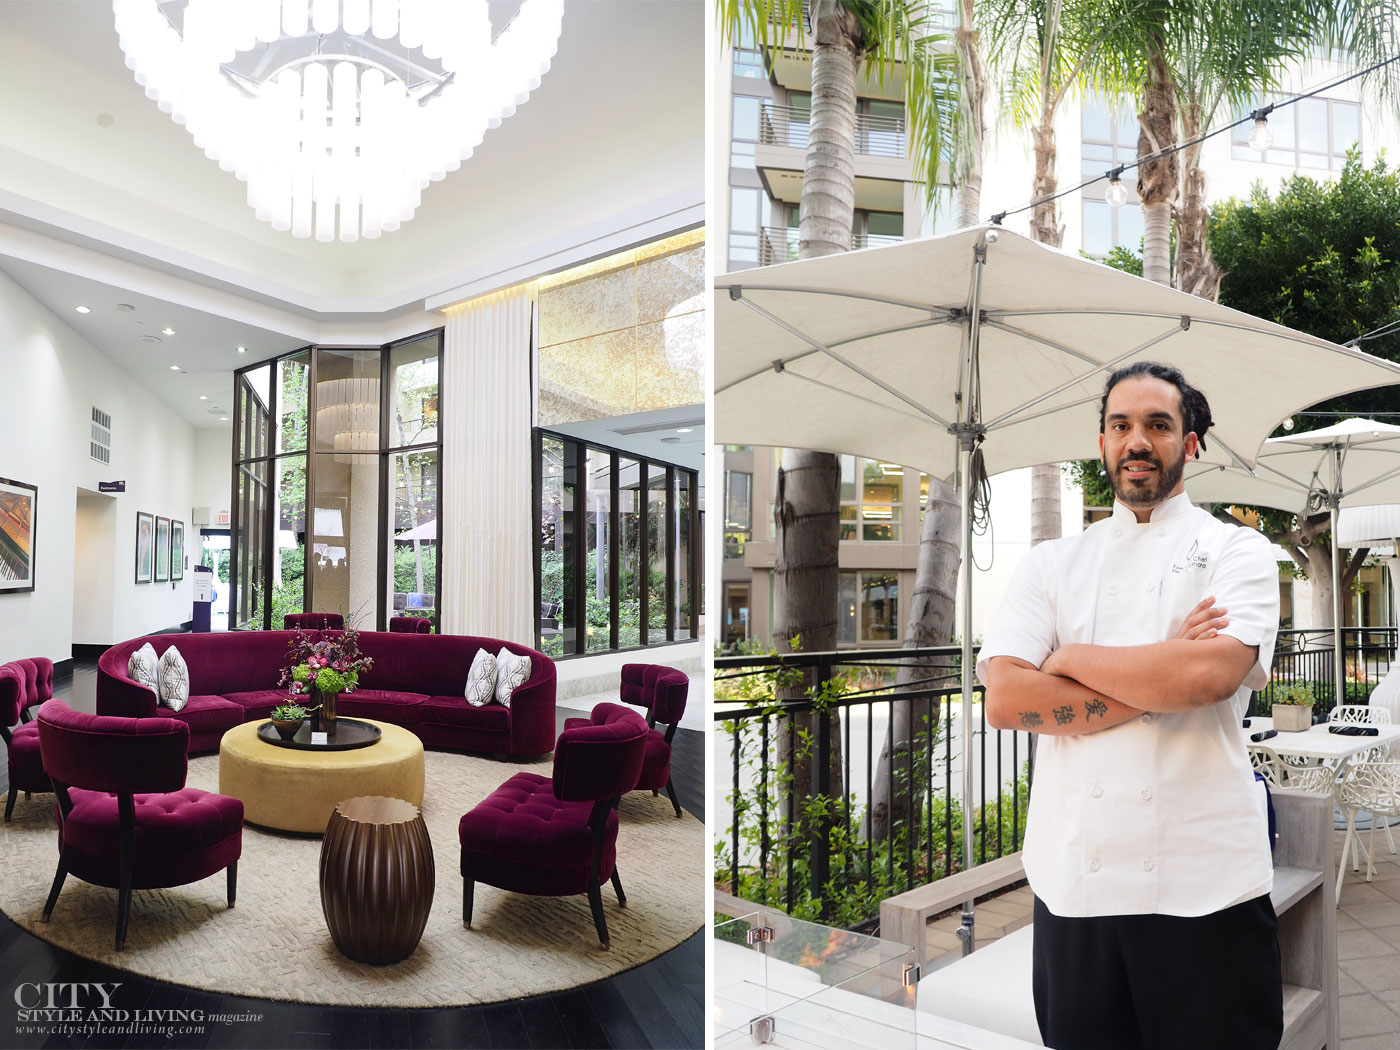 City Style and Living Magazine Summer 2019 Hotels Avenue of the Arts Costa Mesa lobby design and chef hector zamora